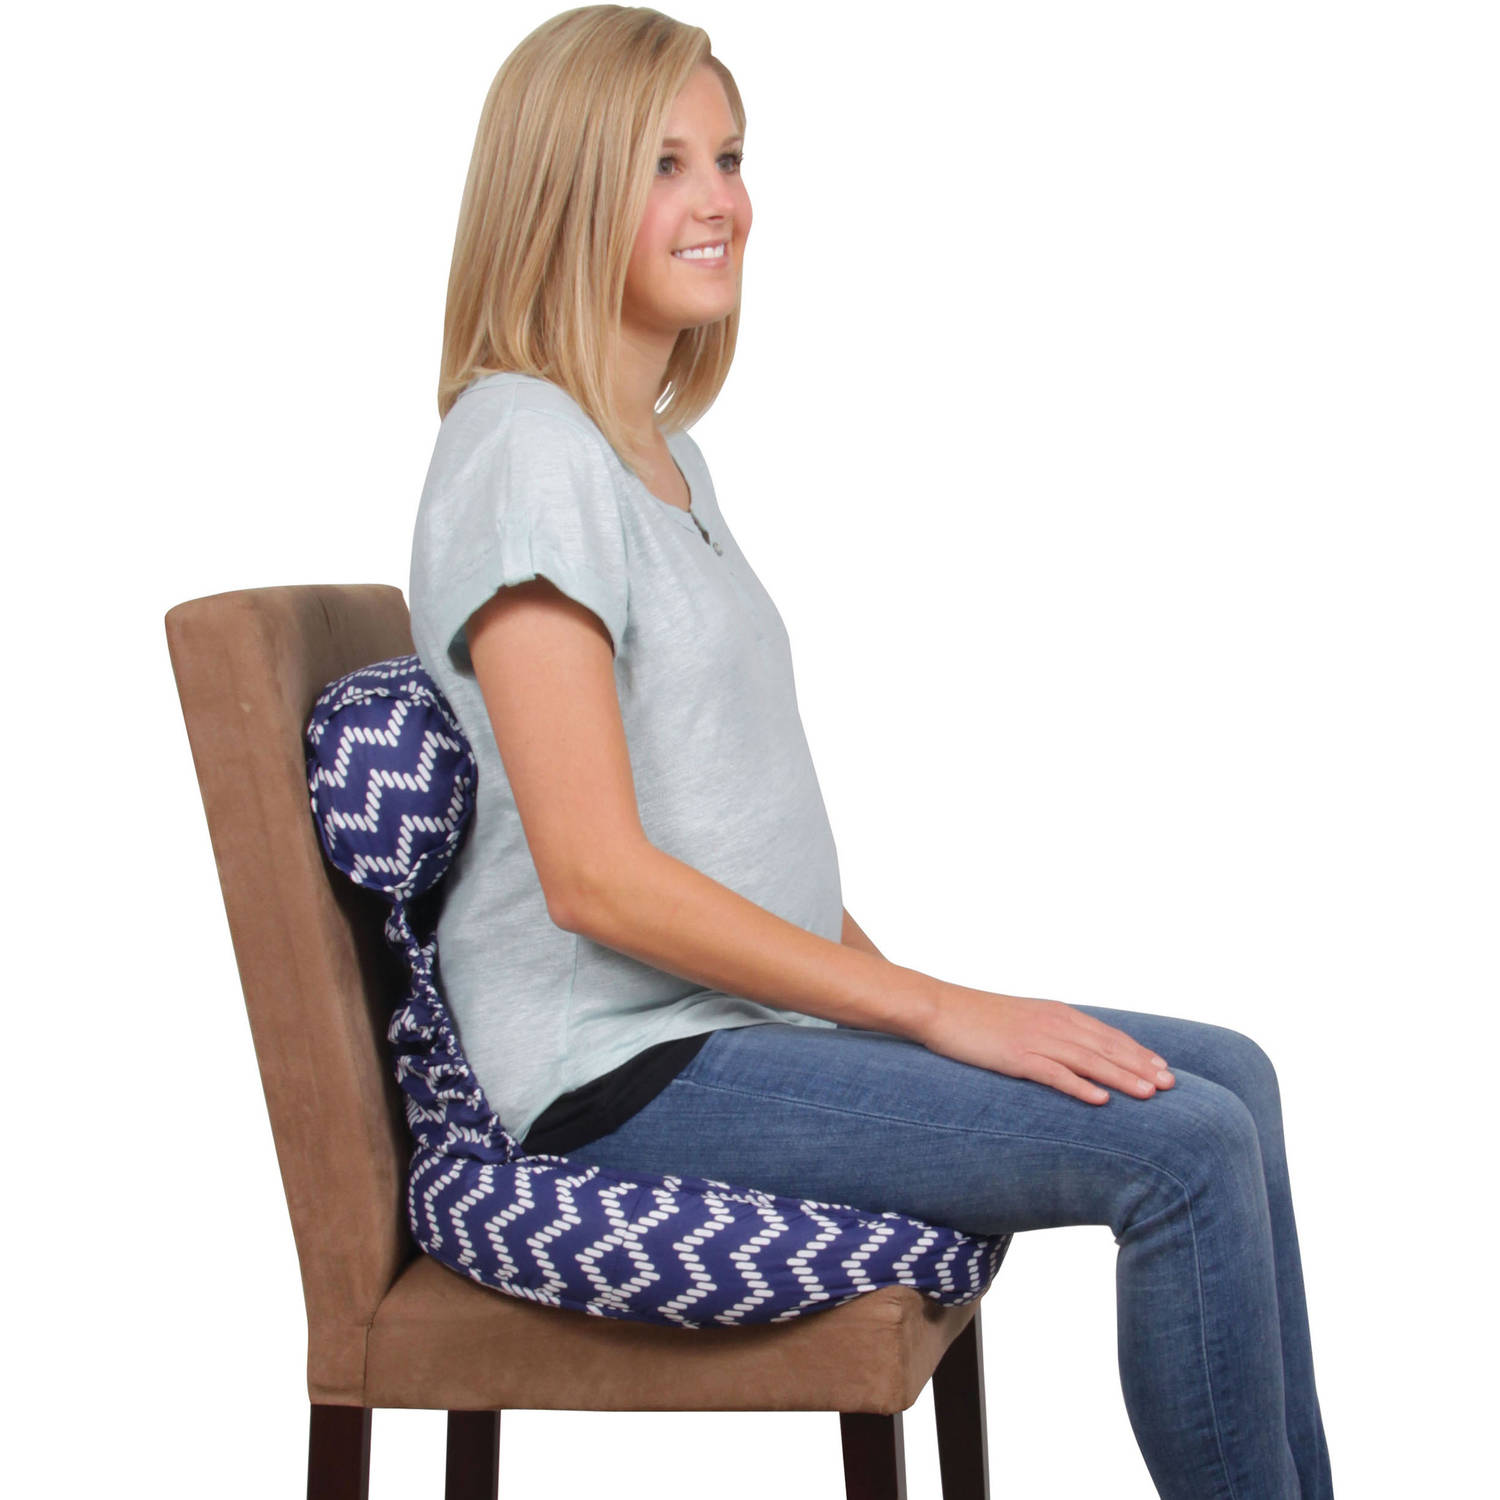 Leachco Tushion Cushion Maternity Soft Seat, Chevron Navy